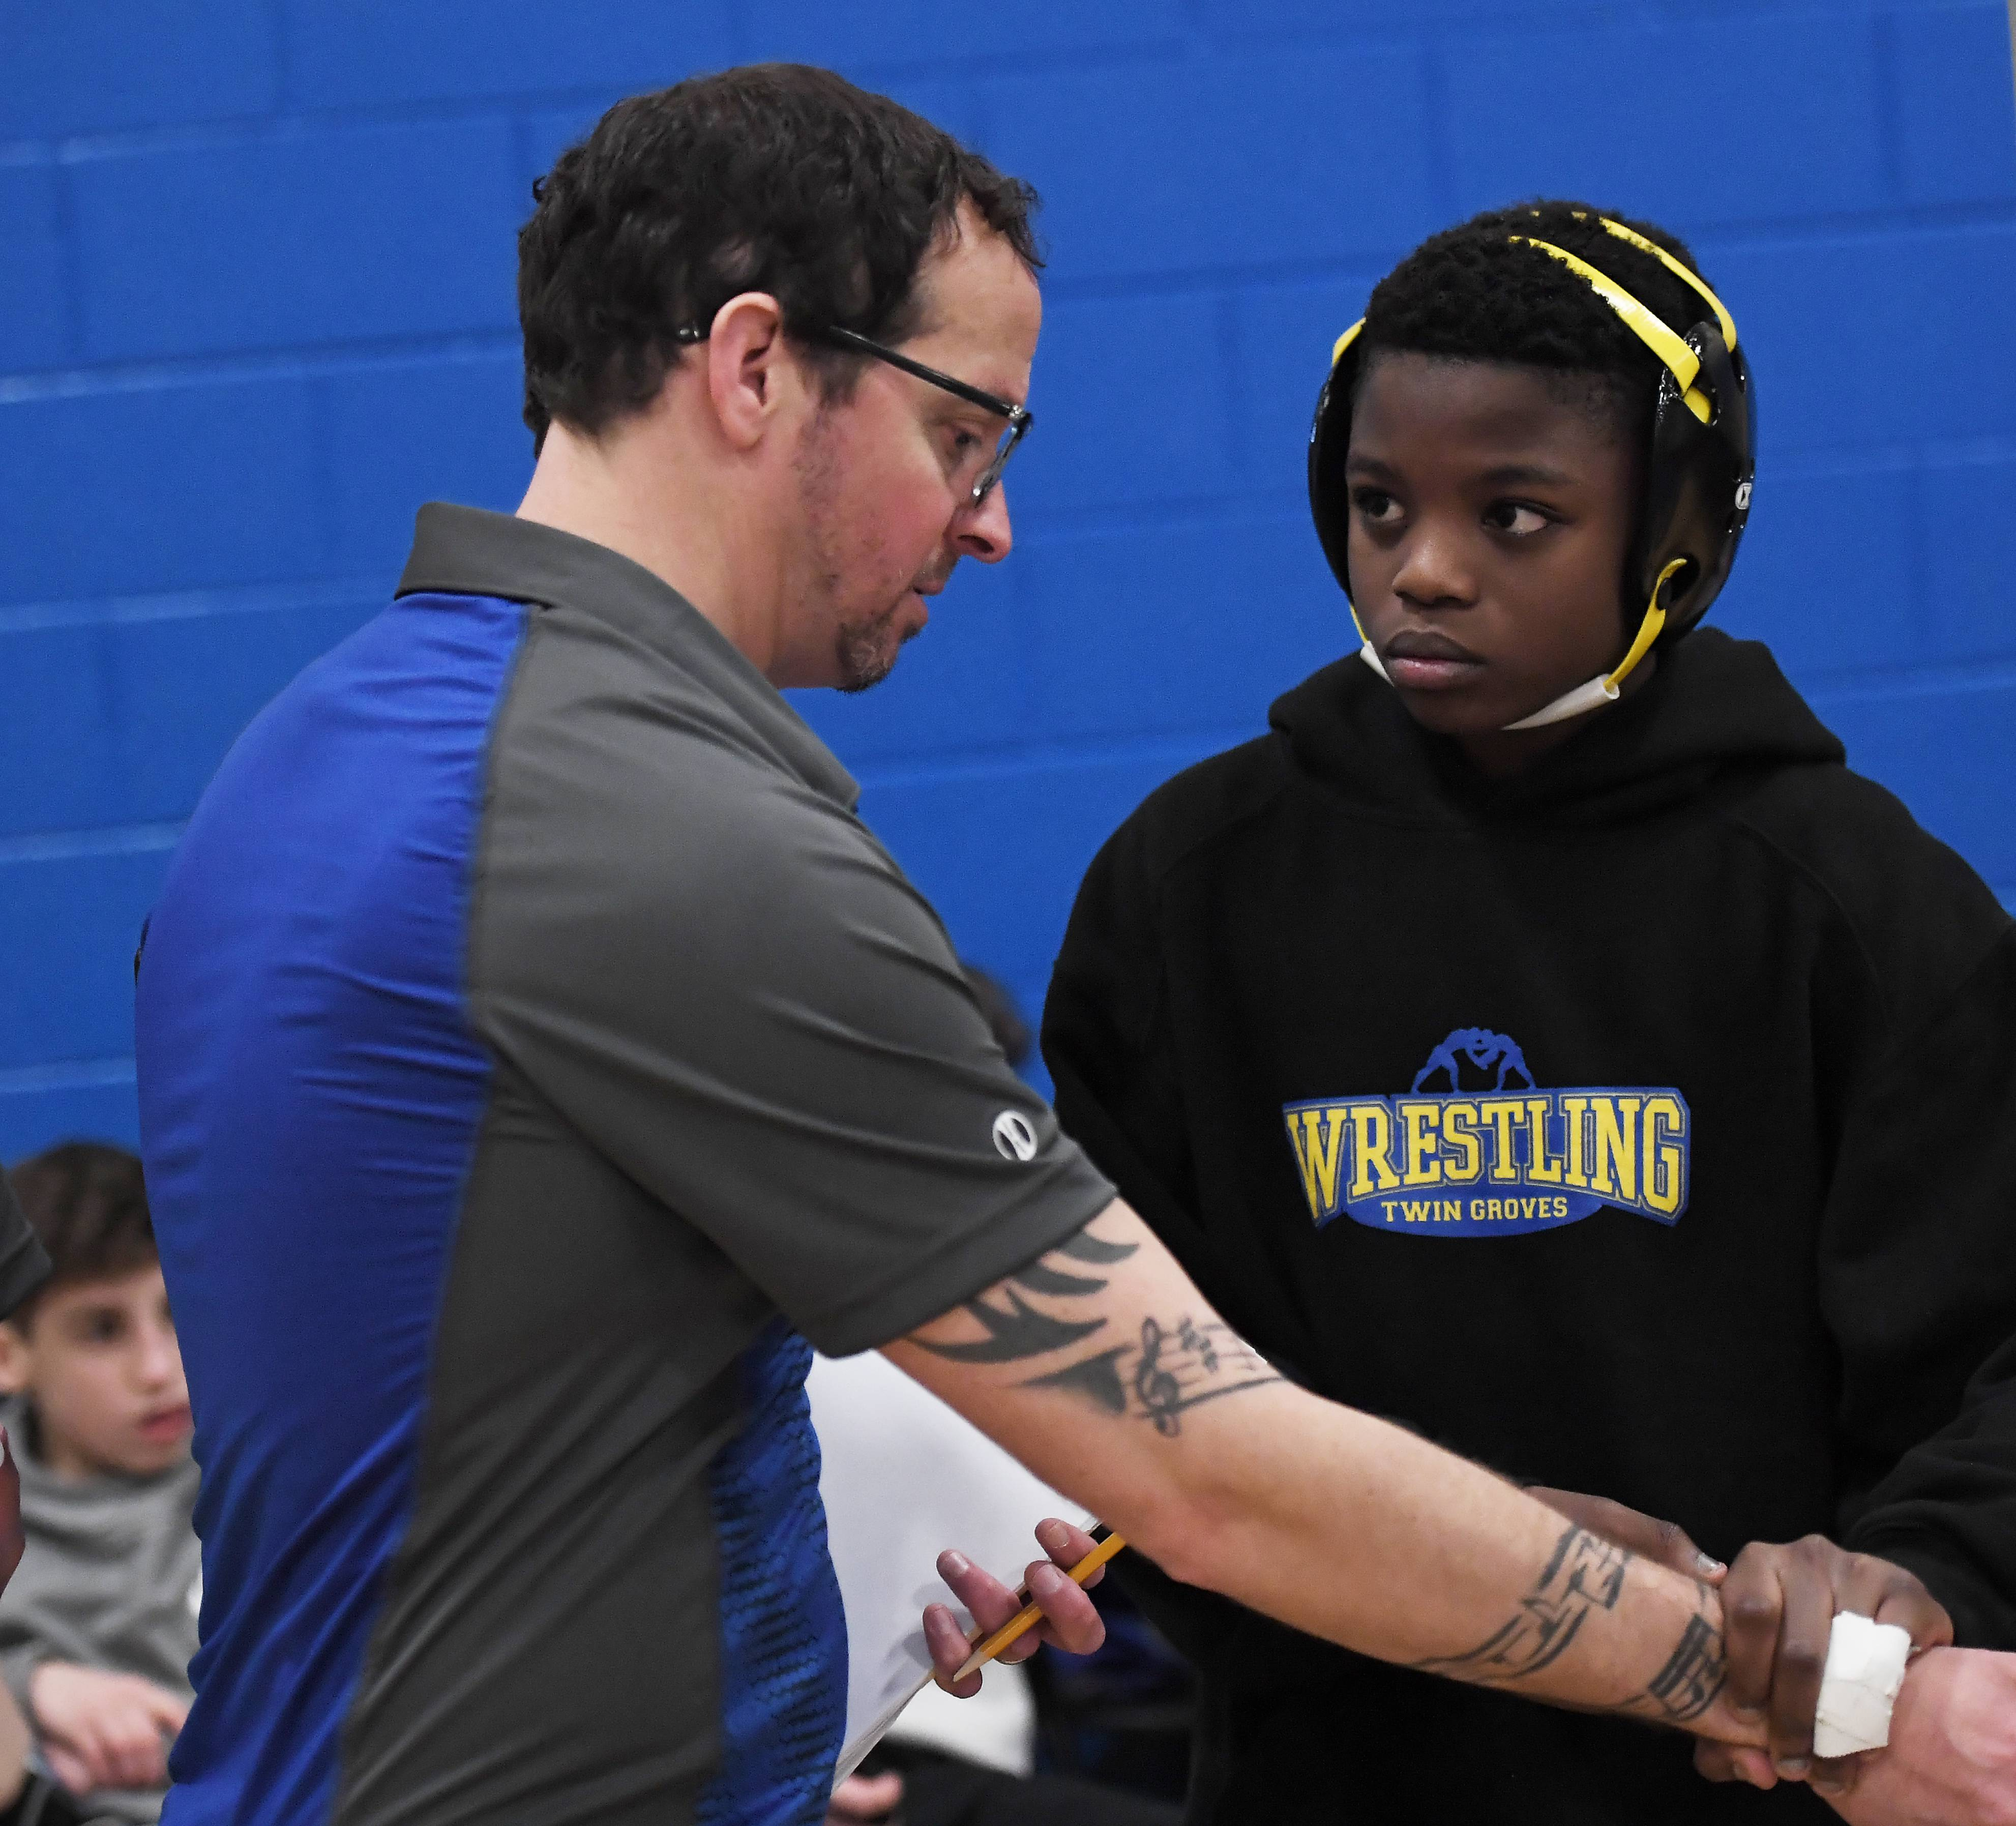 Adam Greenberg, Twin Groves Middle School wrestling coach in Buffalo Grove, instructs Themba Sitshela, who was in the 105-pound weight class, with some last-minute techniques at the 6th annual Lindsey Durlacher Wrestling Tournament in Buffalo Grove on Saturday.